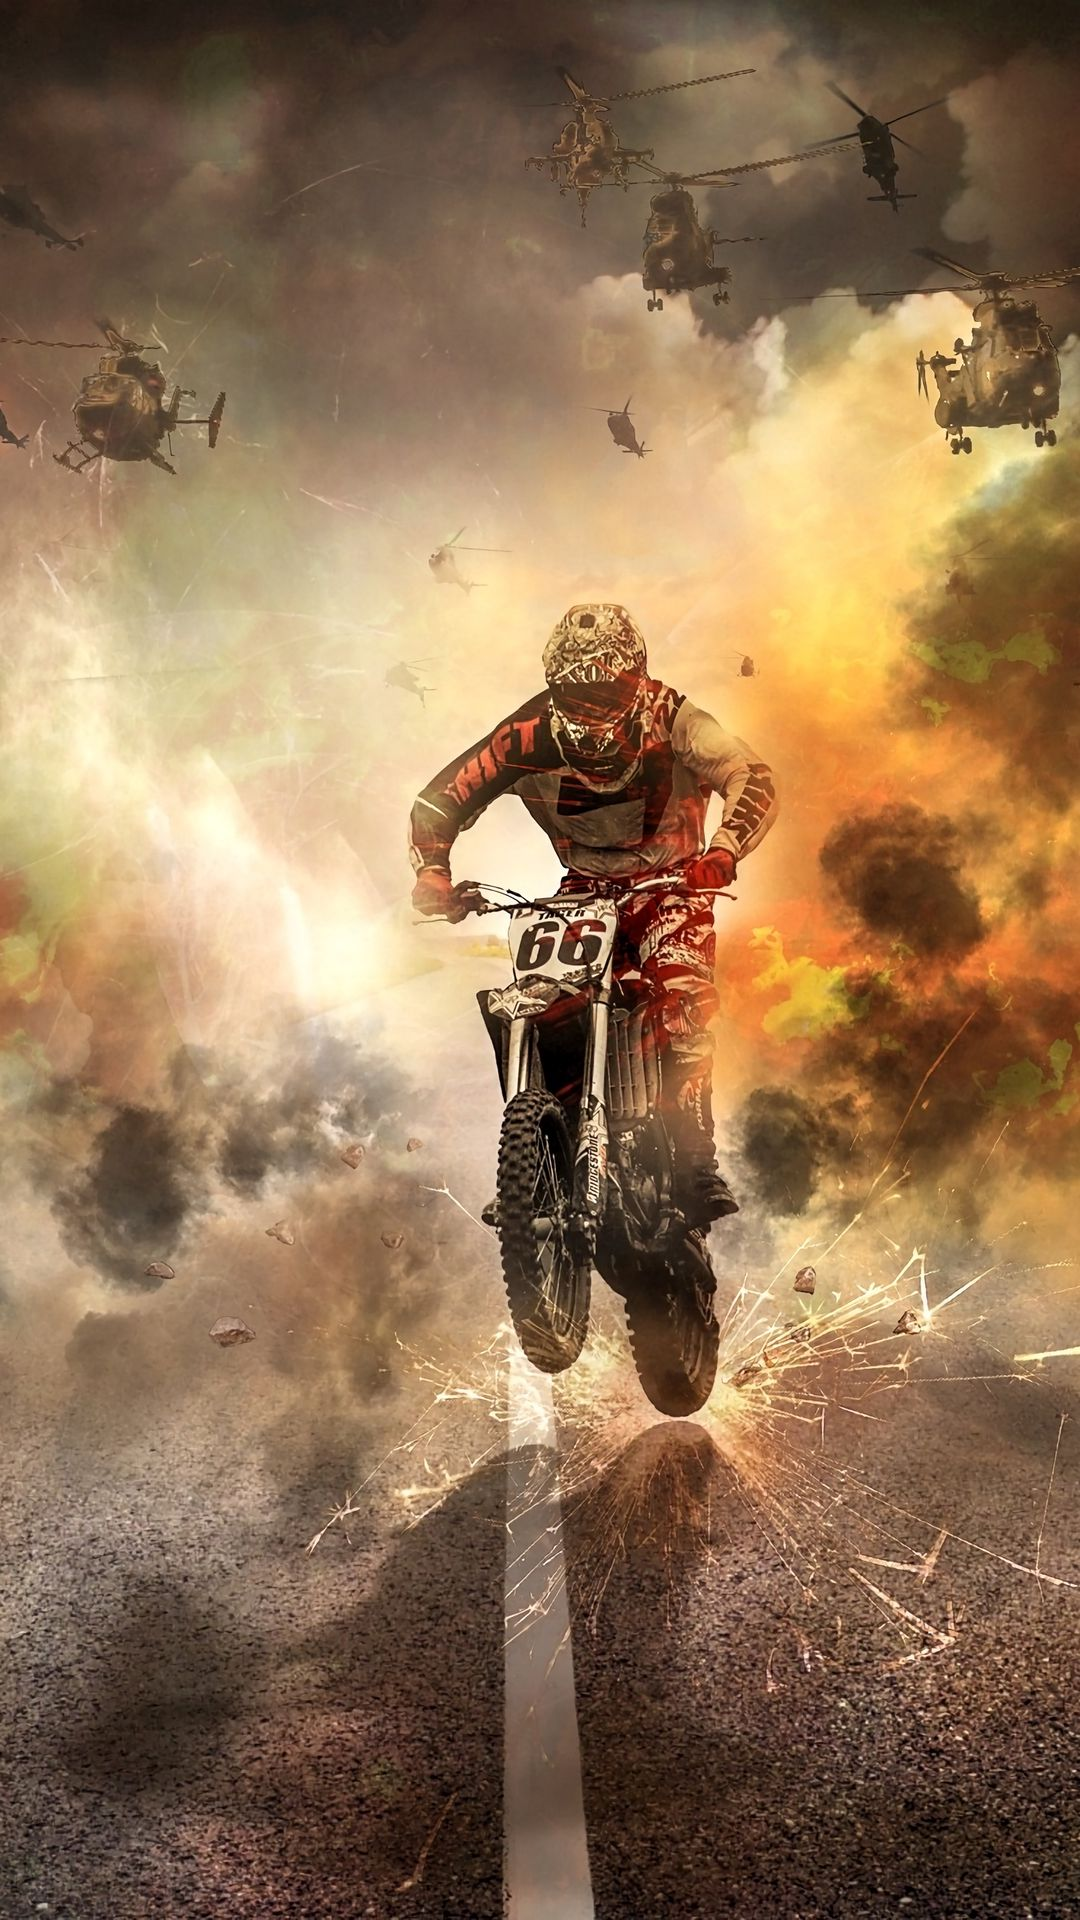 1080x1920 Wallpaper motorcyclist, motorcycle, helicopters, sparks, fire, road